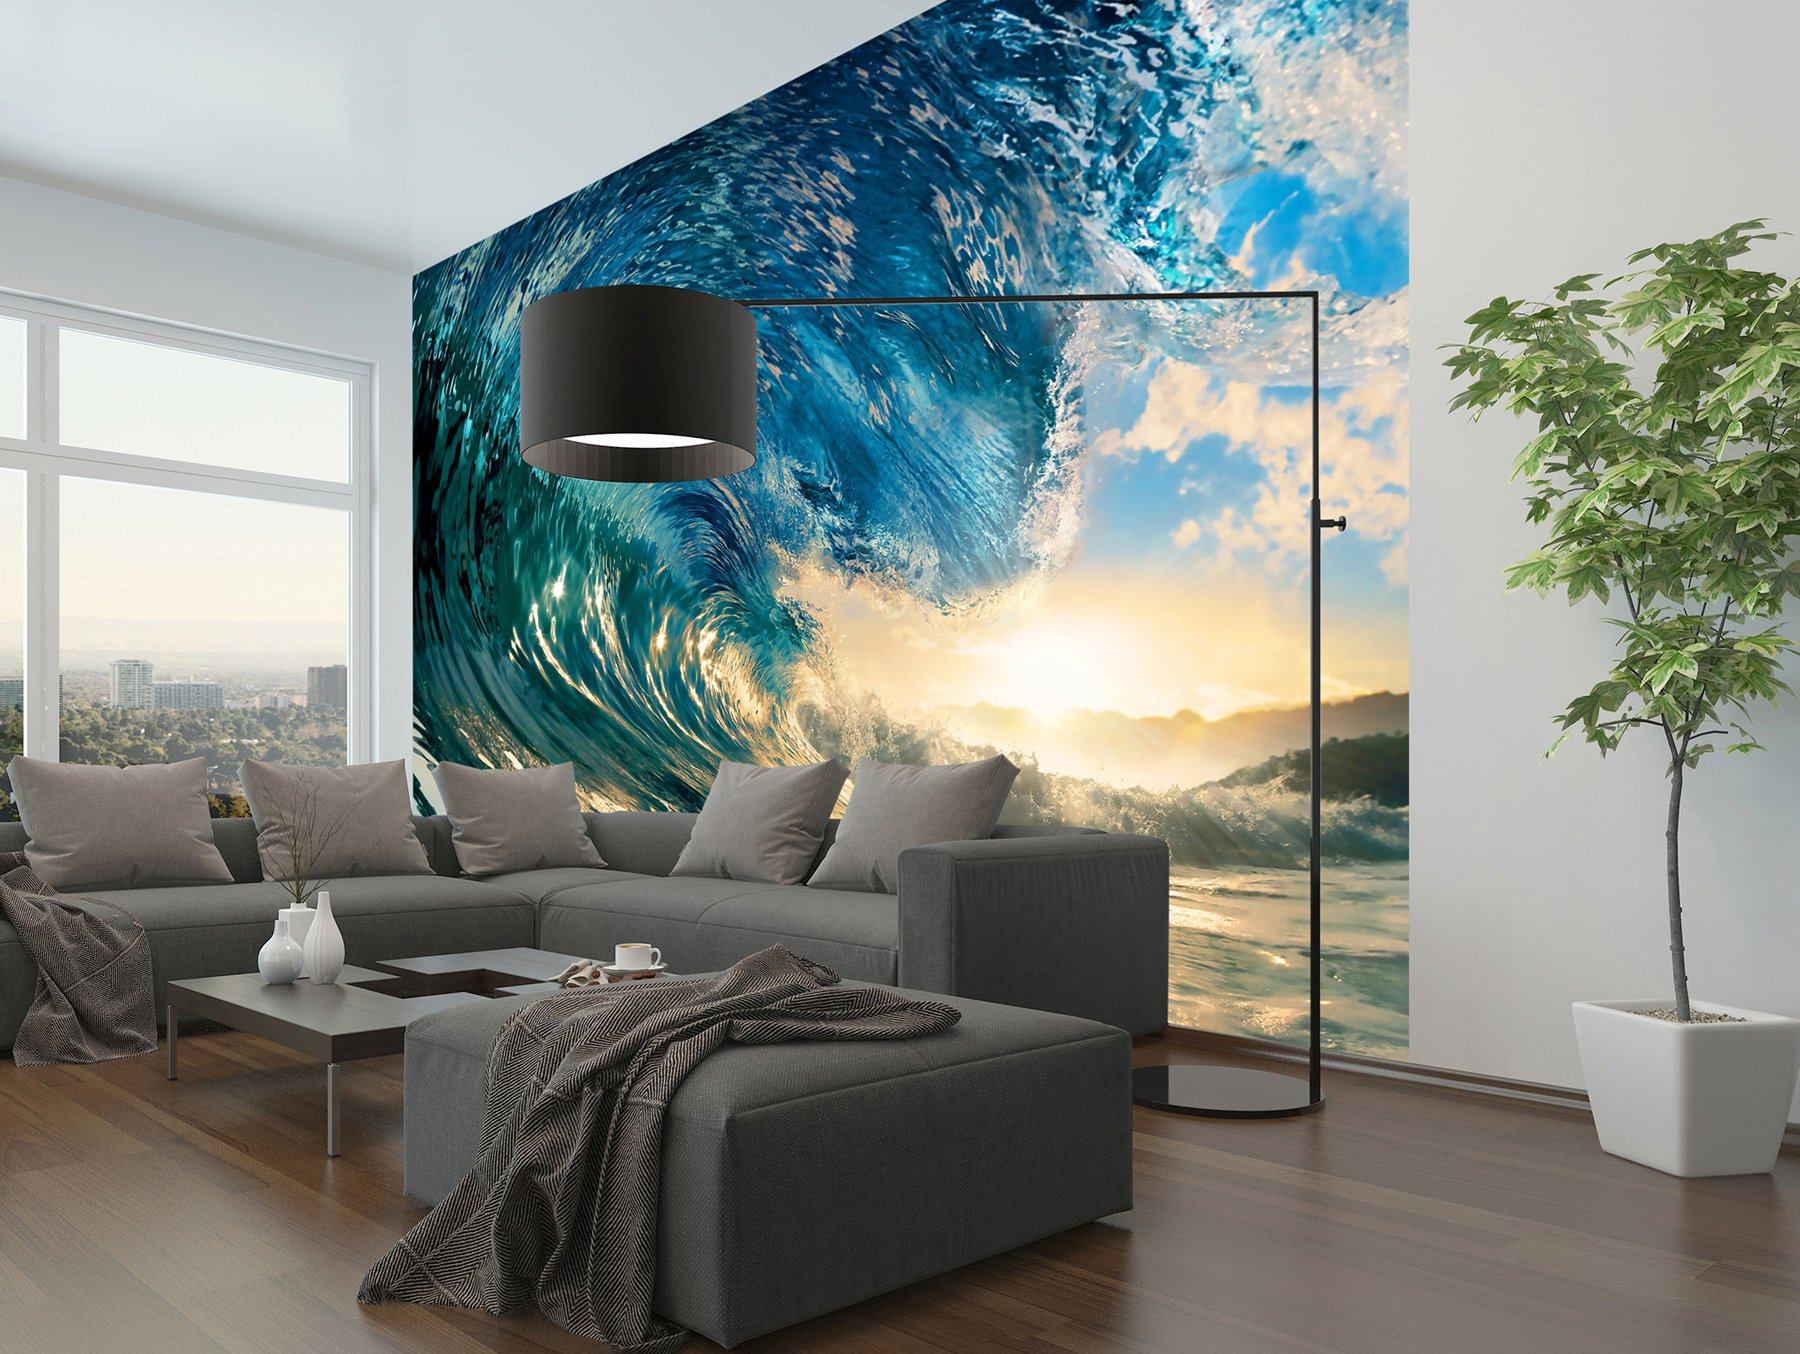 Wizb0|#Wizard & Genius DM962 The Perfect Wave Wall Mural, by Wizard (Image #3)